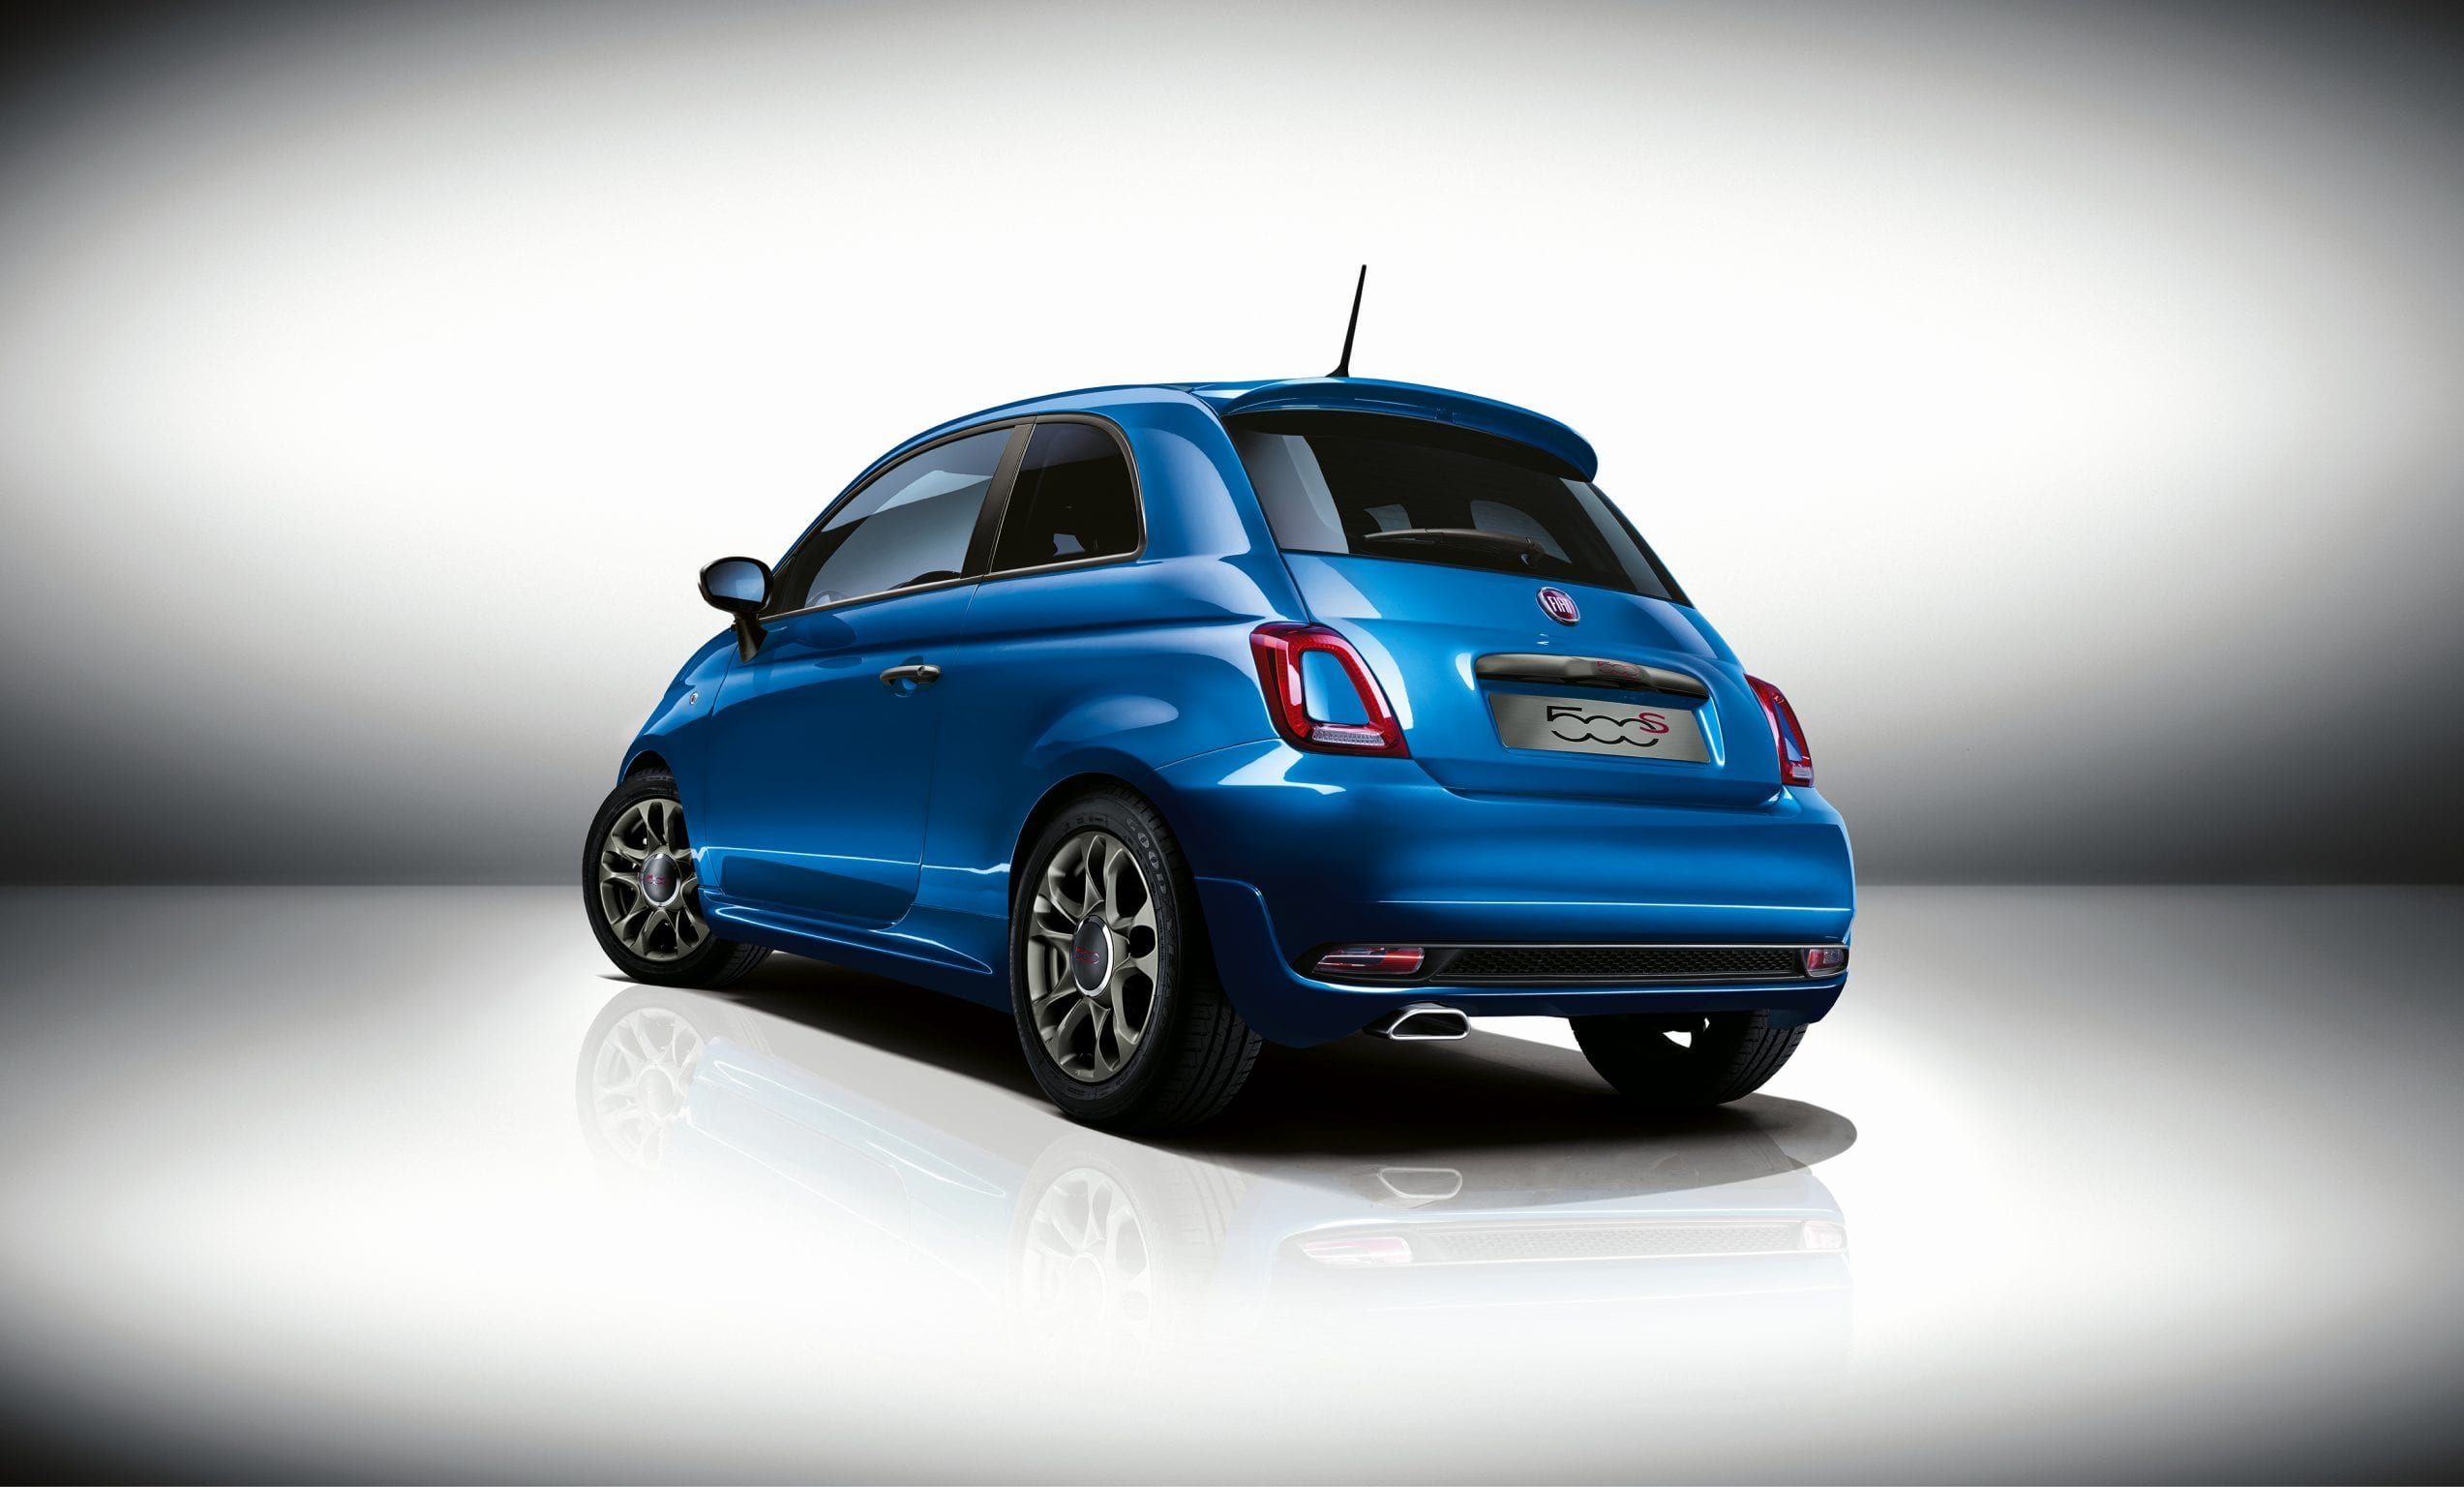 Nieuw: Fiat Private Buy!